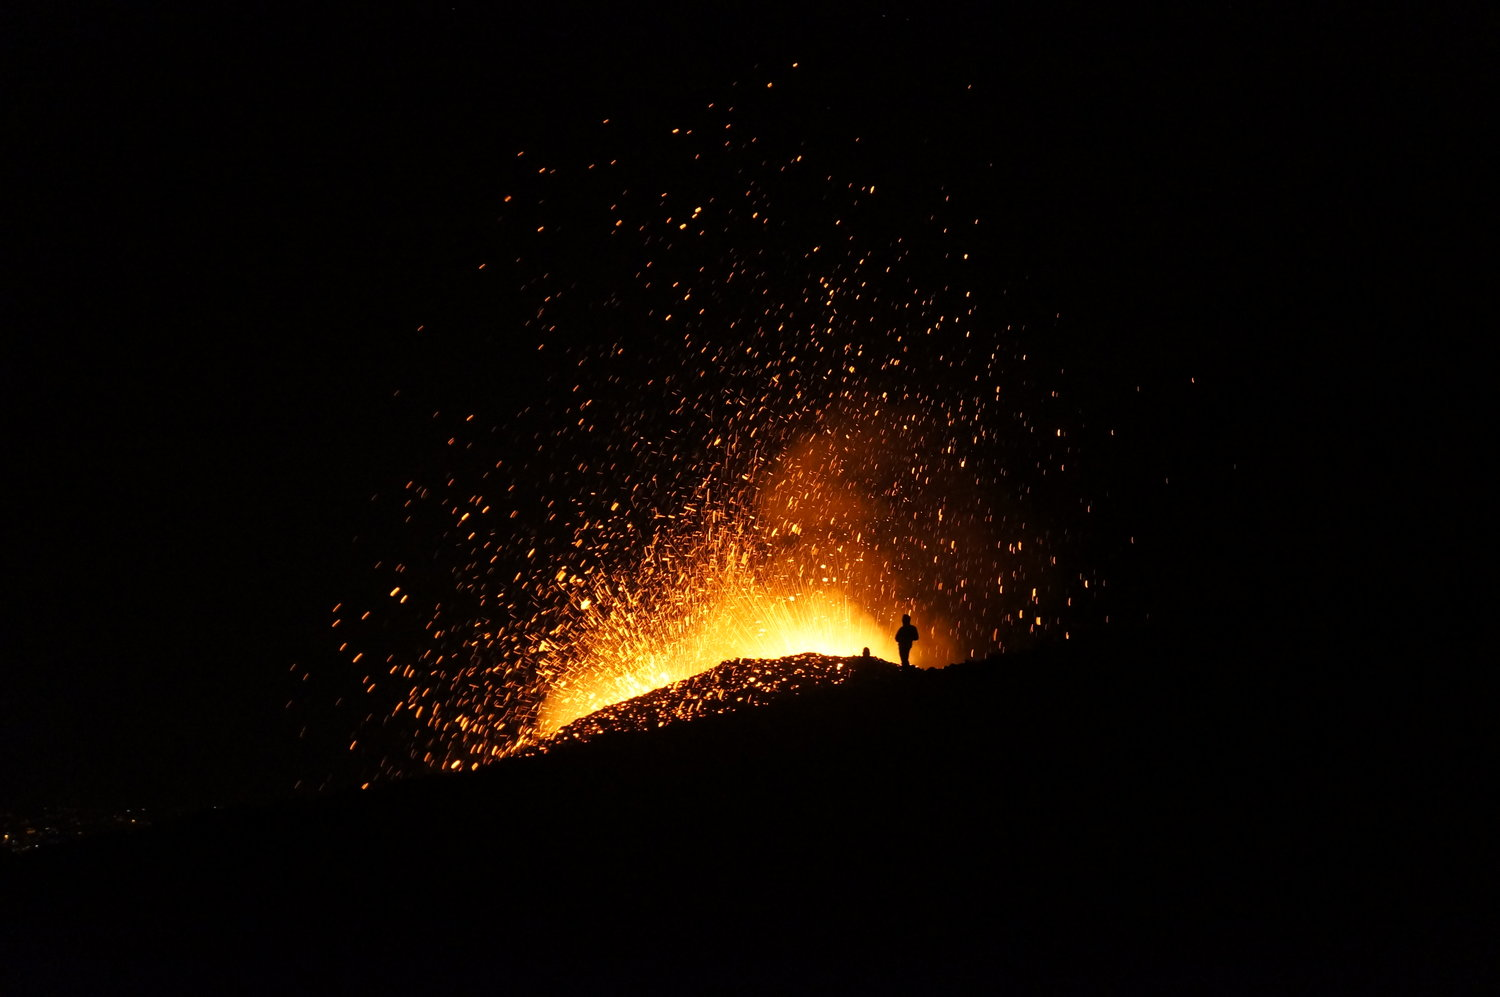 The two new little craters on North-eastern side of Mount Etna